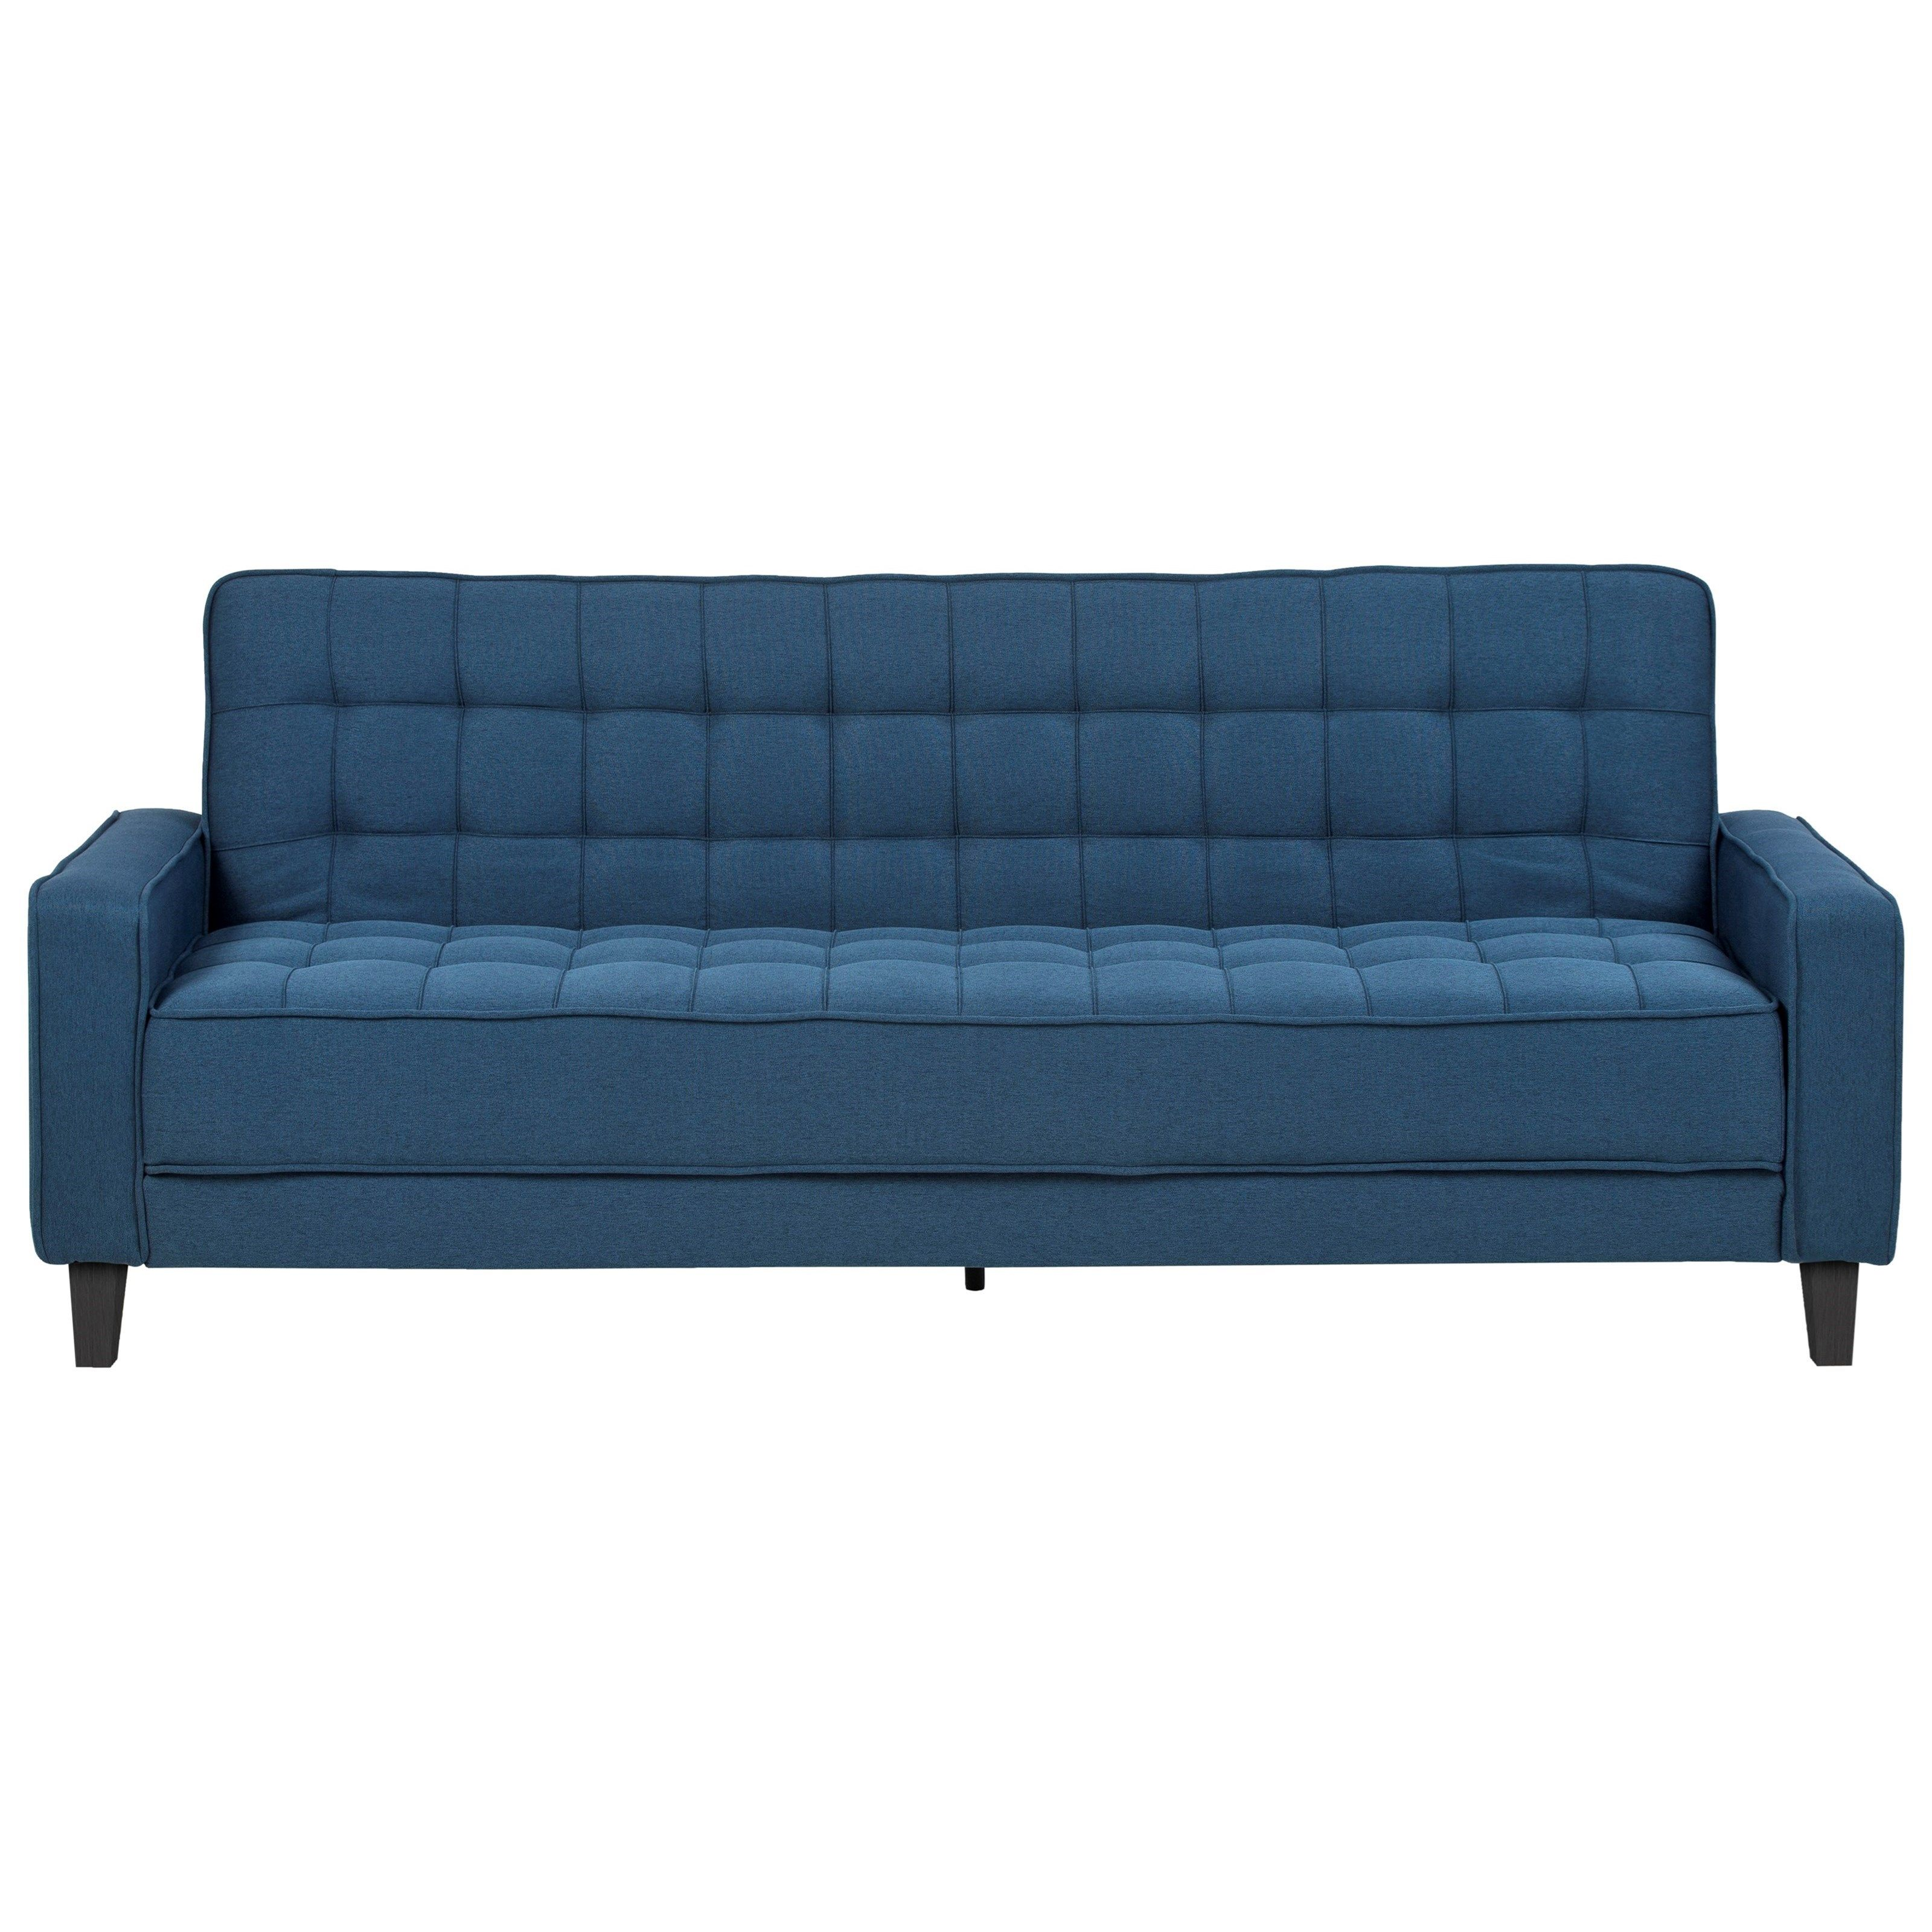 Montrose Sofabed By Actona Company At Abode Sofa Bed 3 Seat